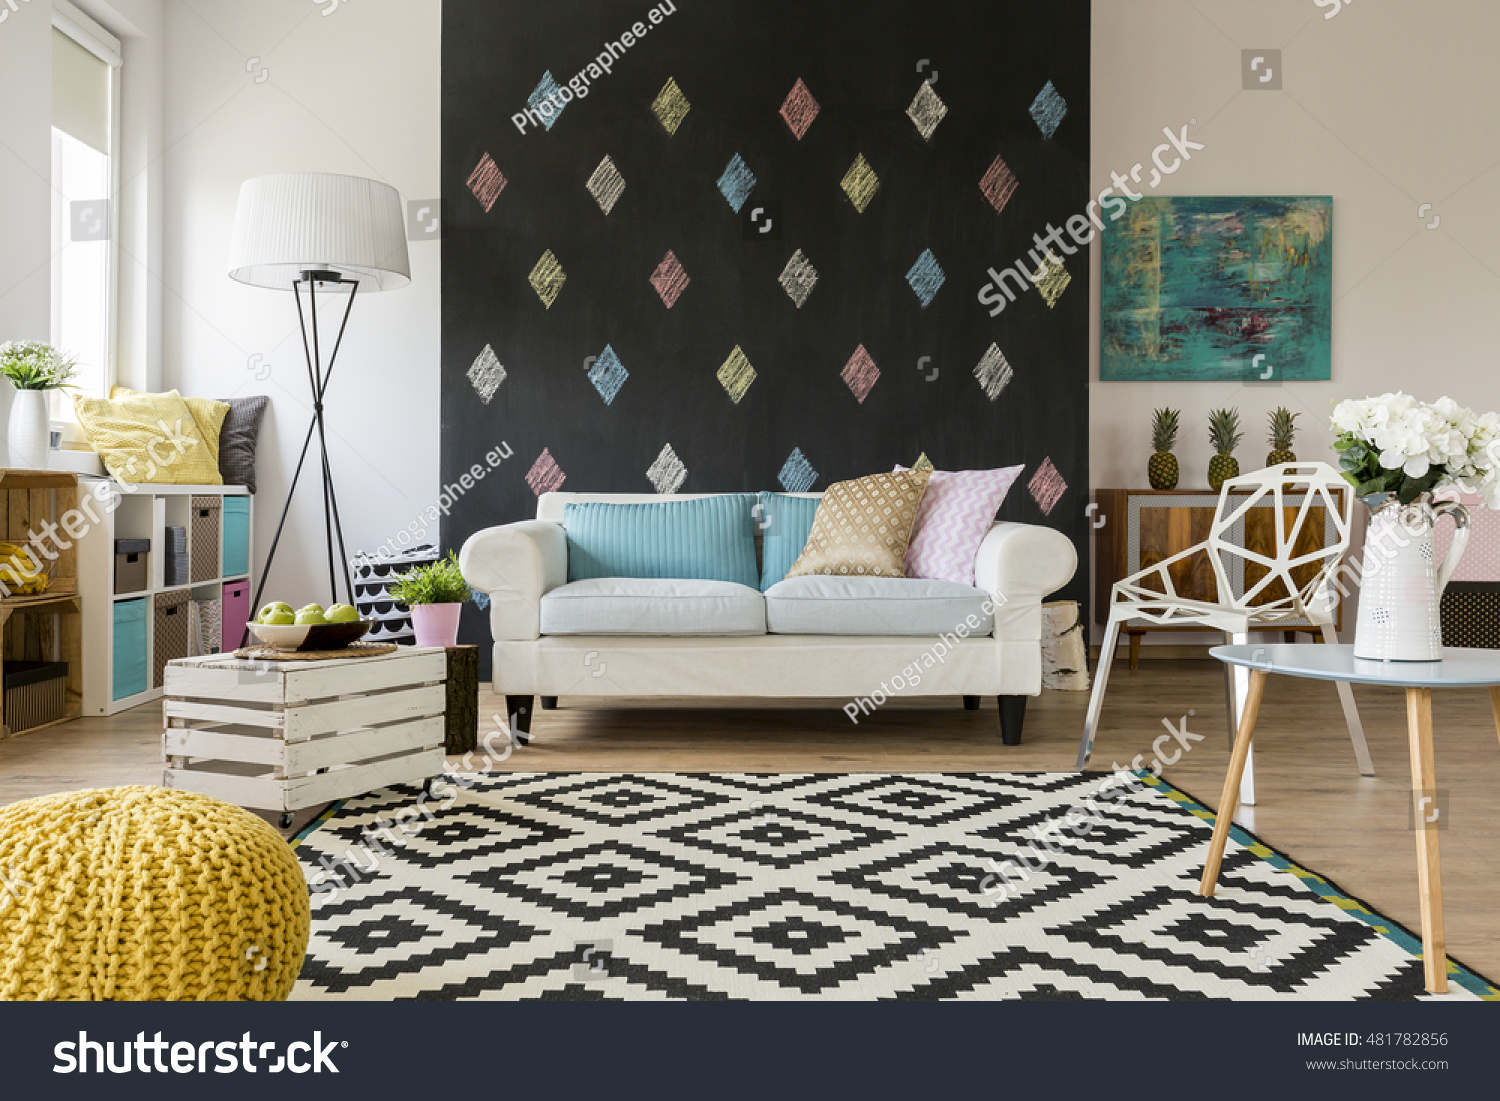 Shot of a spacious living room with a big sofa and a blackboard wall #481782856